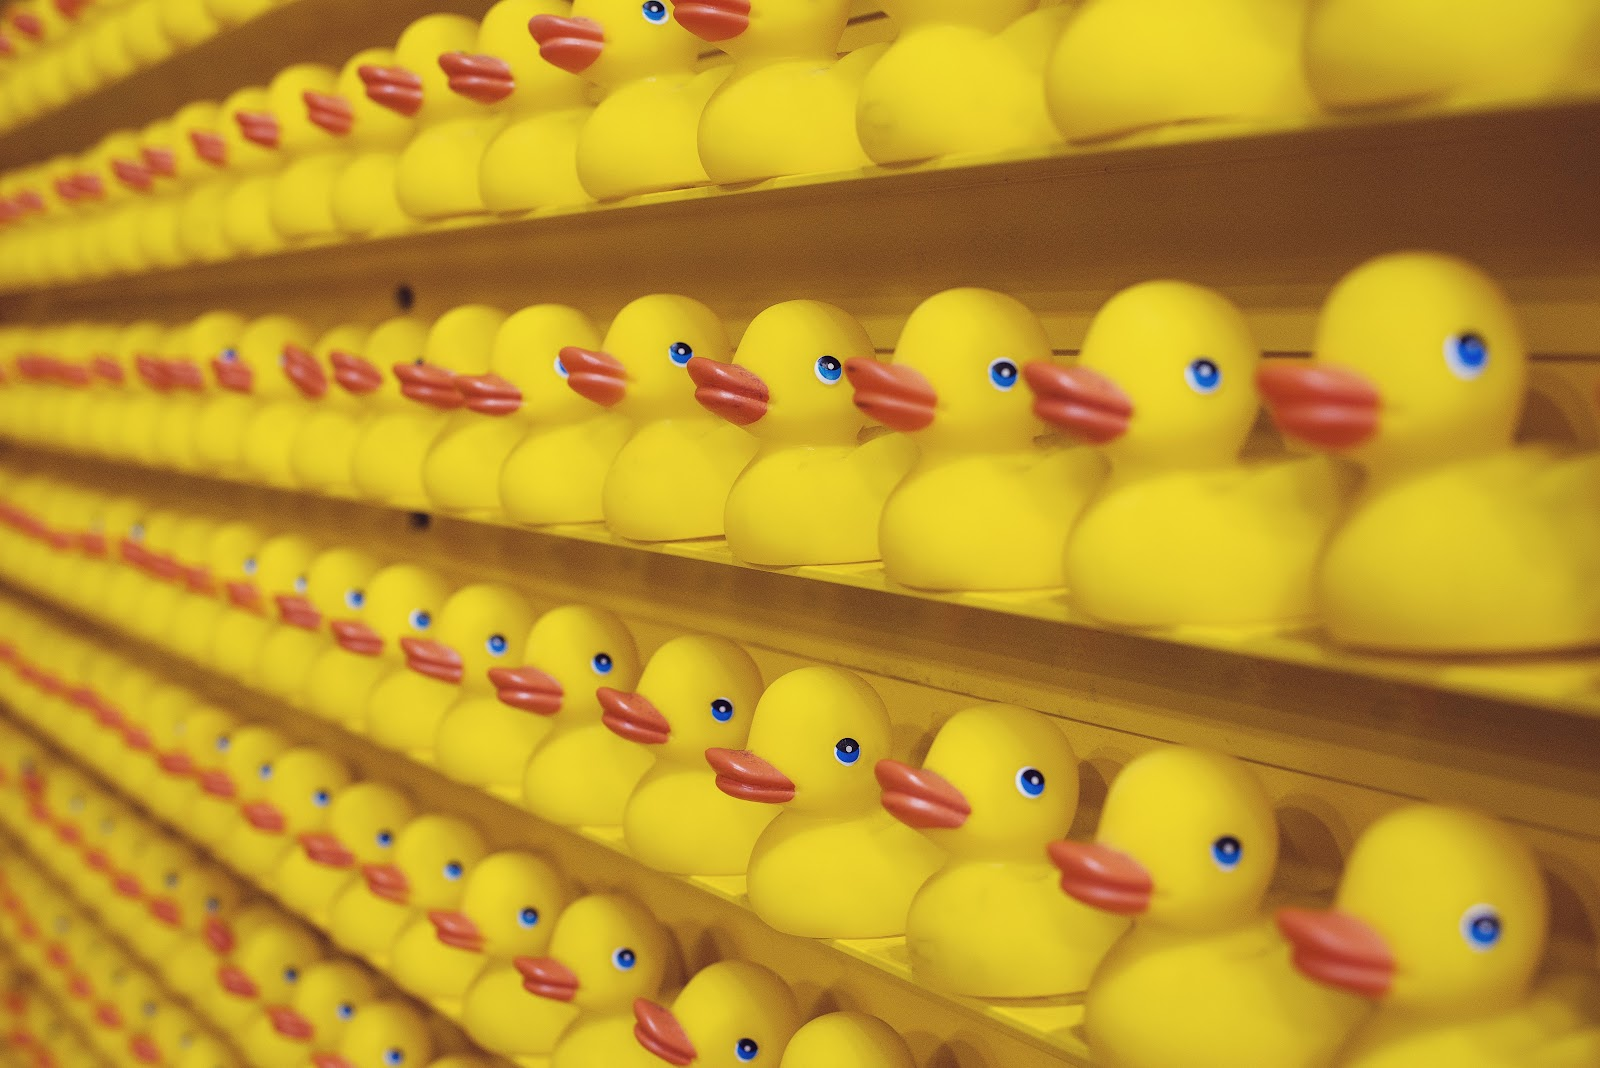 Wall of yellow rubber ducks - overcome a mental block by talking through it | PulseBlueprint